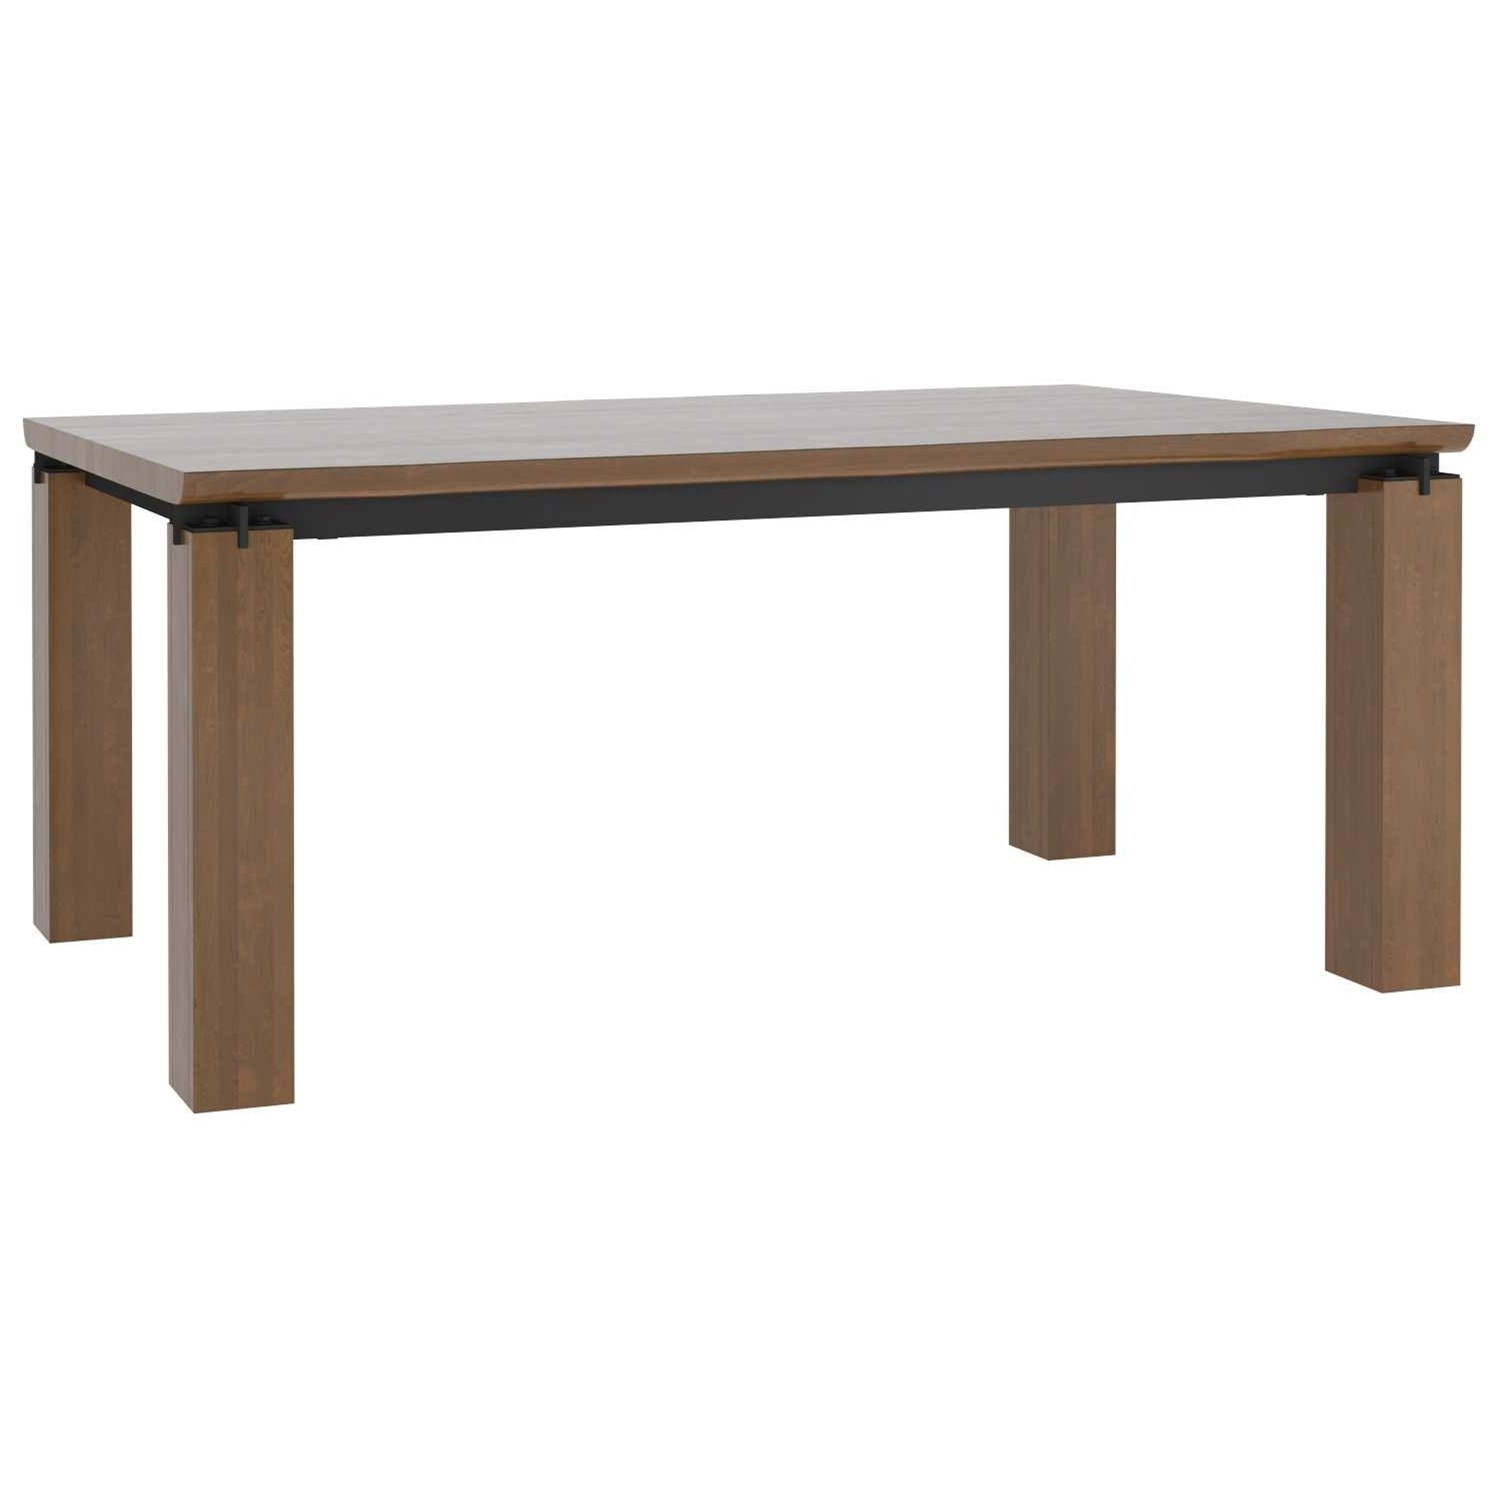 East Side Customizable Wood Top Dining Table by Canadel at Dinette Depot